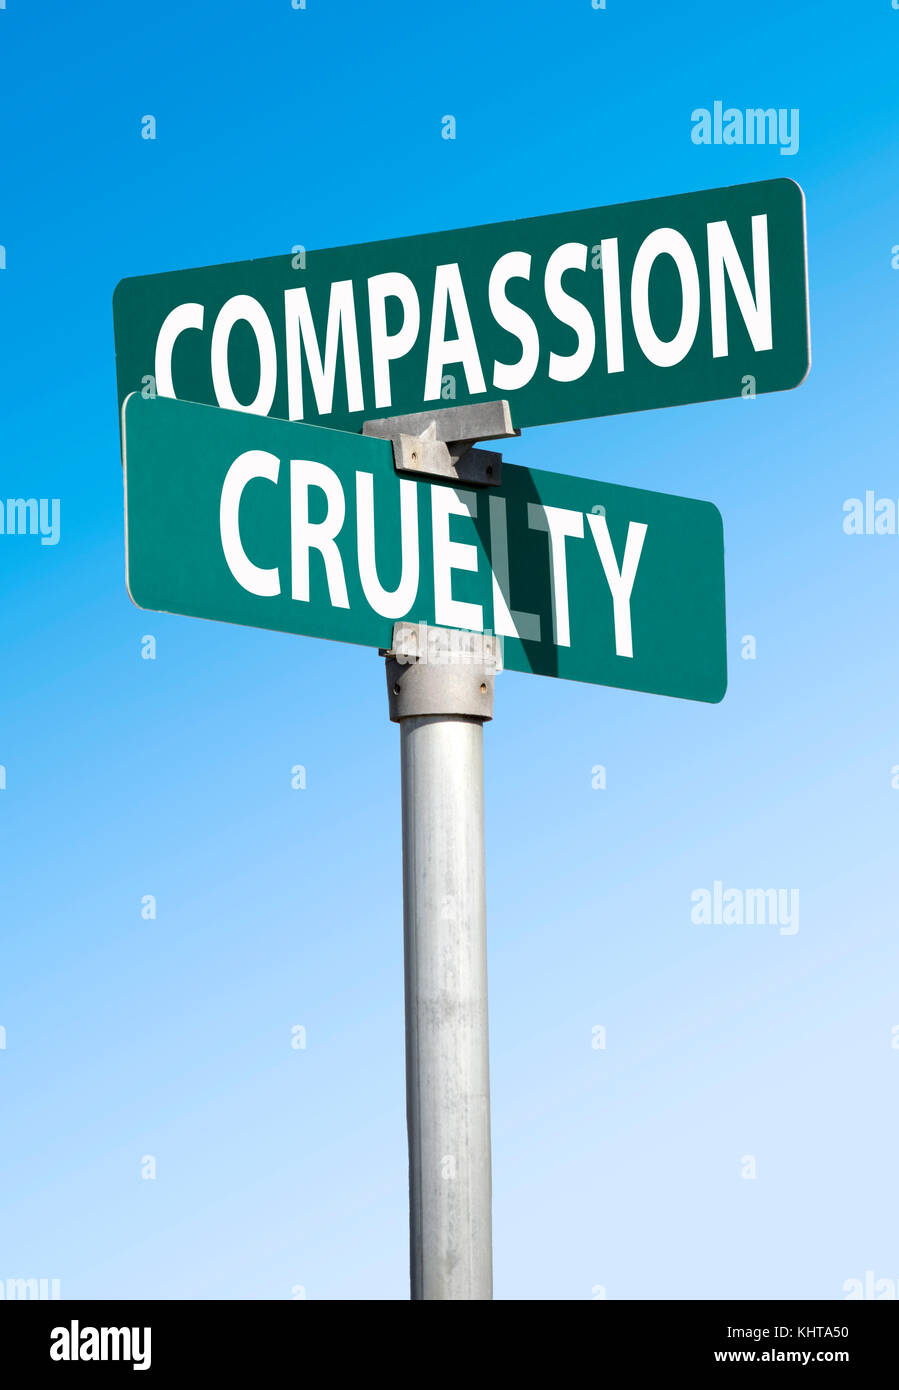 compassion and cruelty - Stock Image